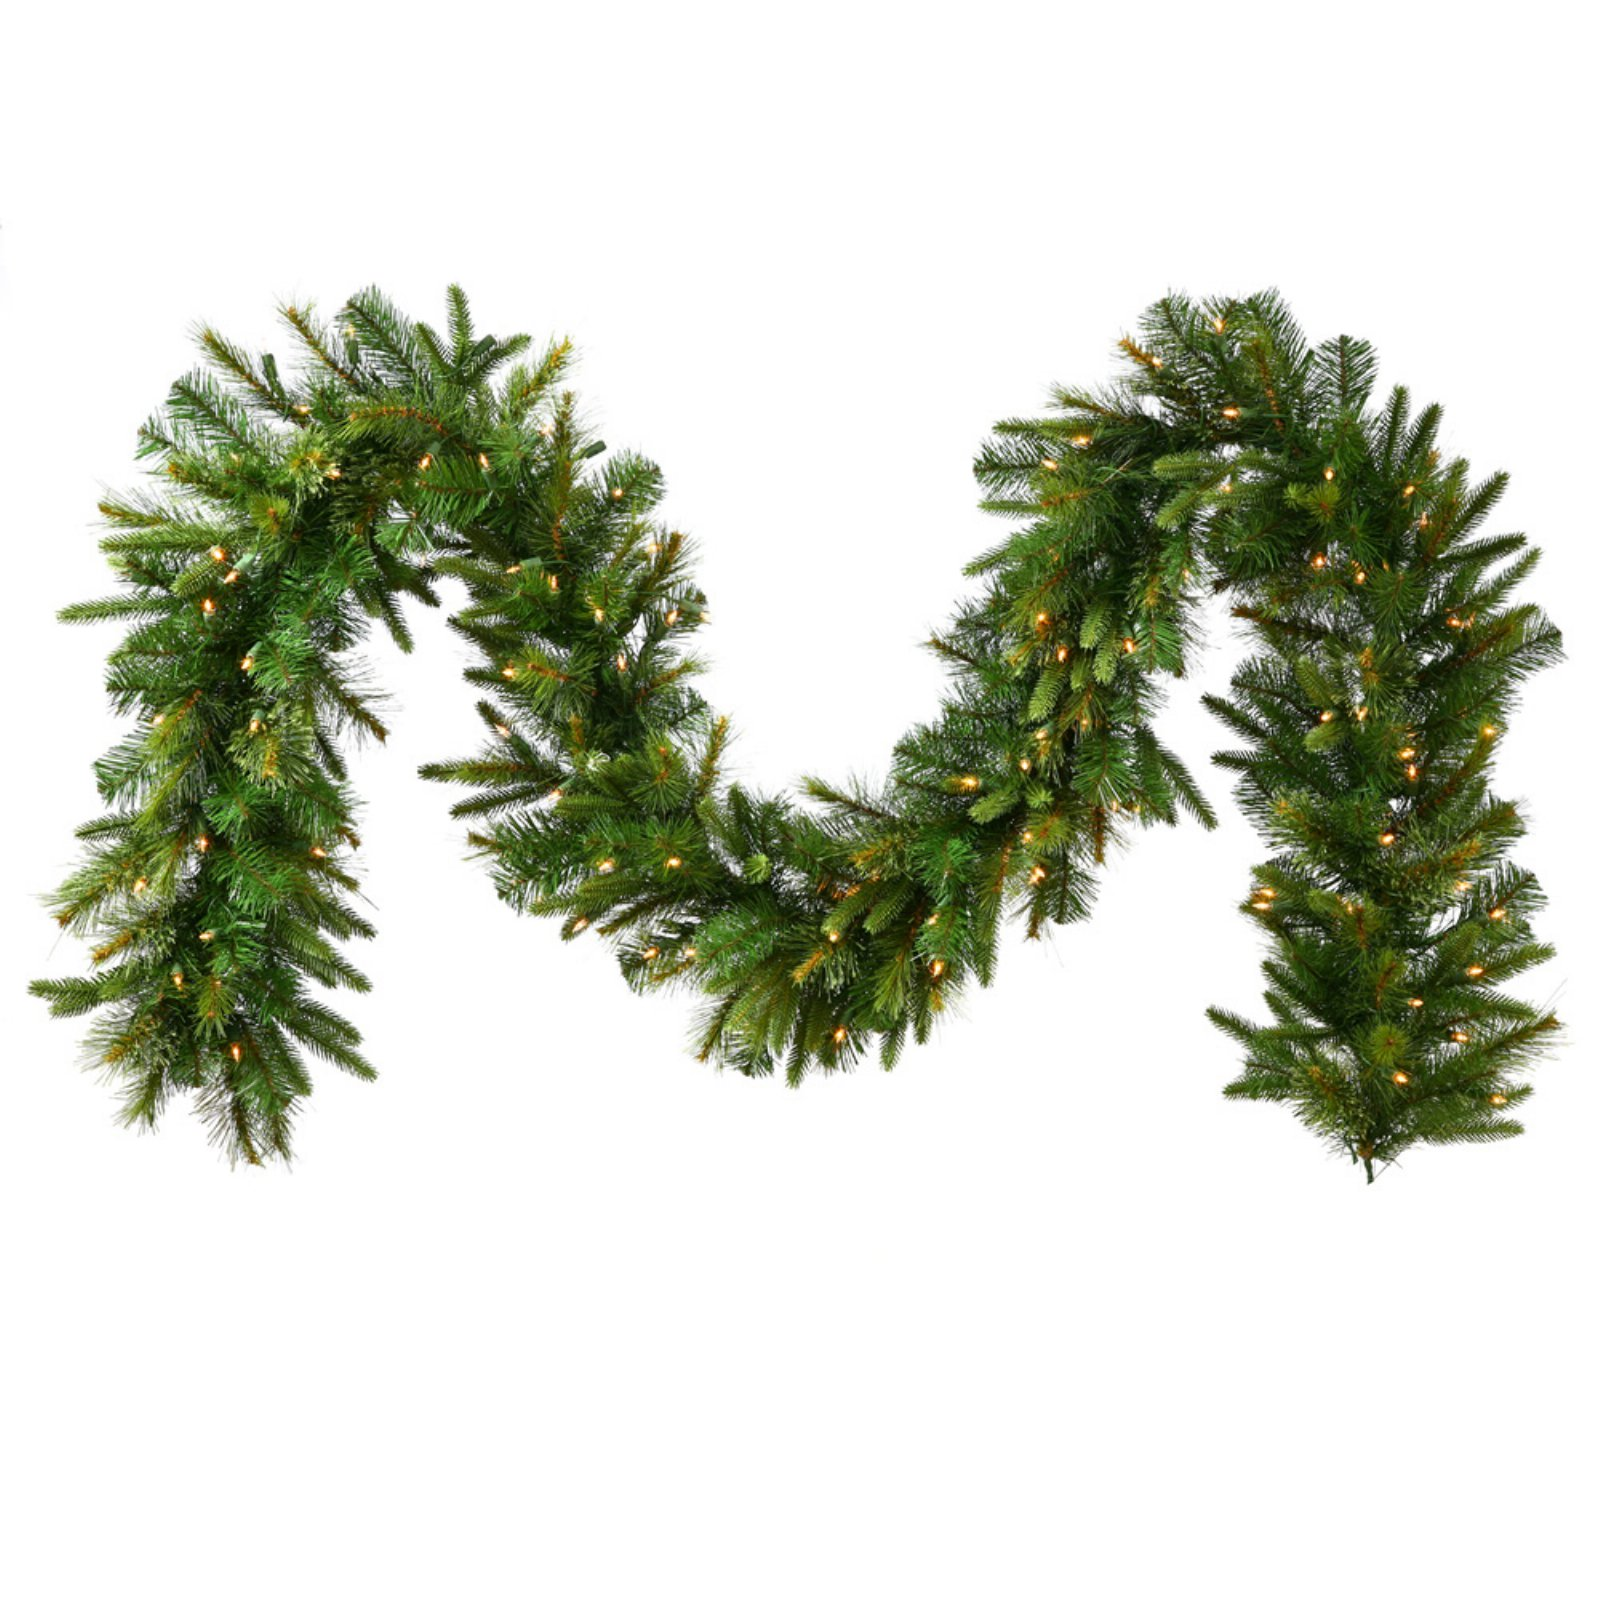 Vickerman 9' Cashmere Artificial Christmas Garland with 150 Multi-Colored LED Lights